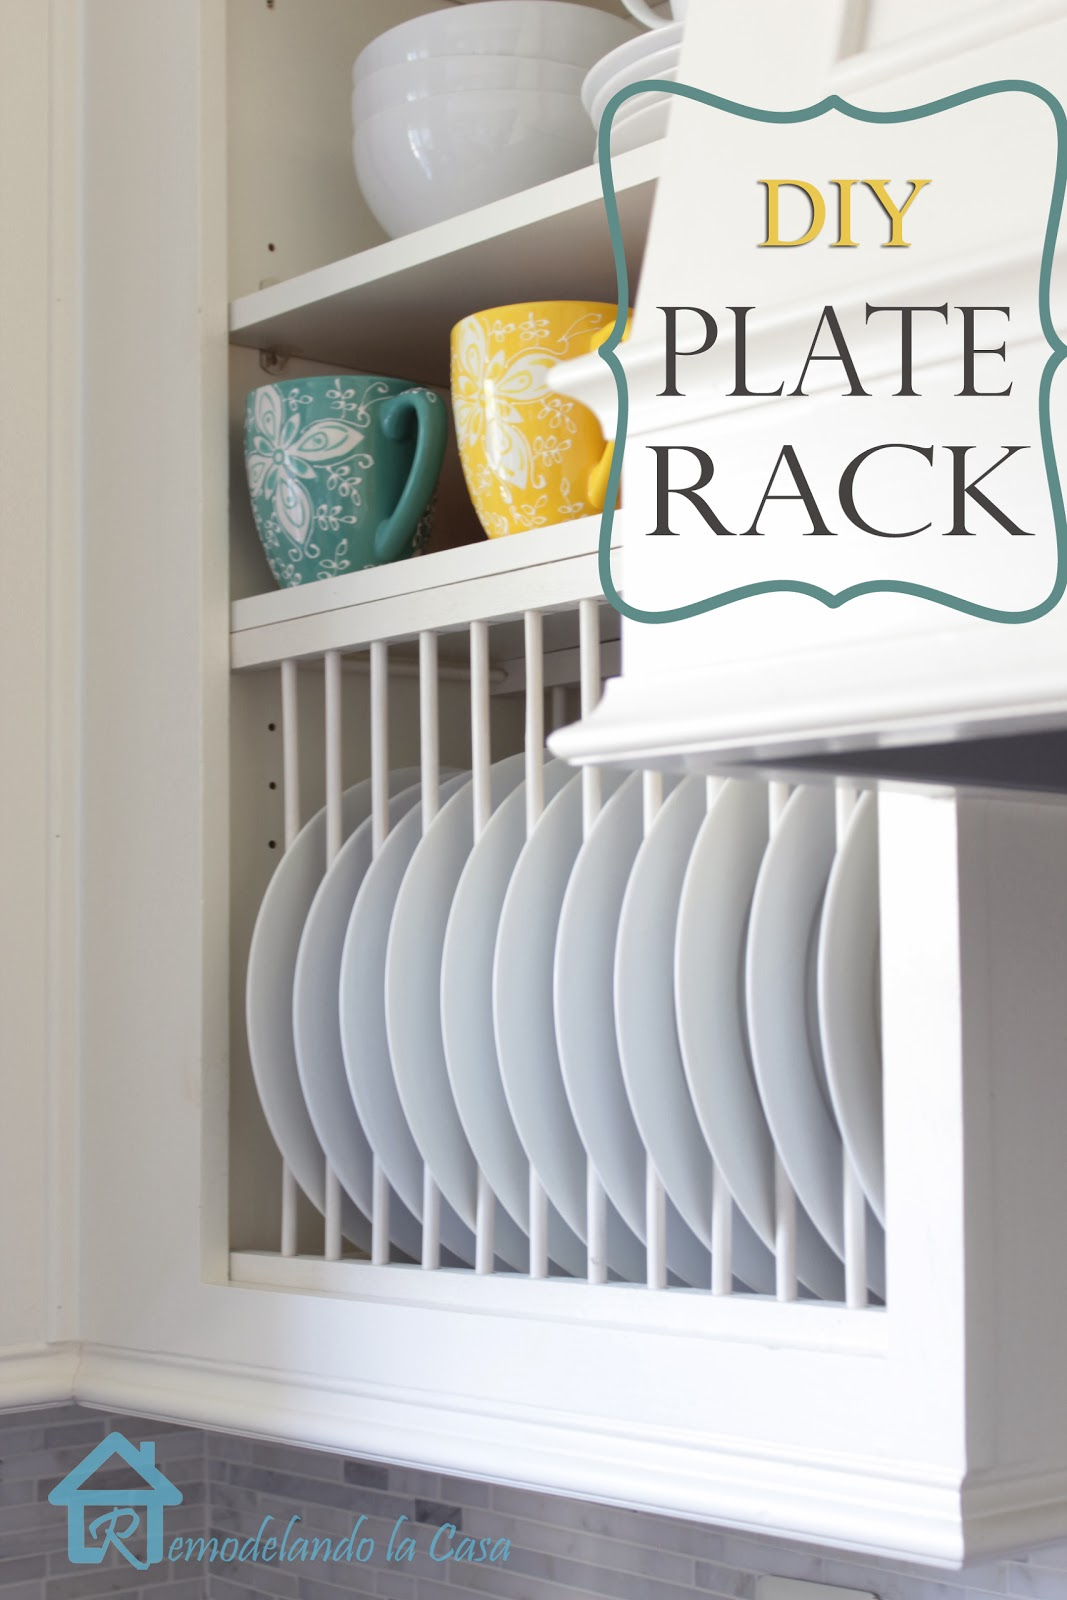 how to build a plate rack inside existing cabinet